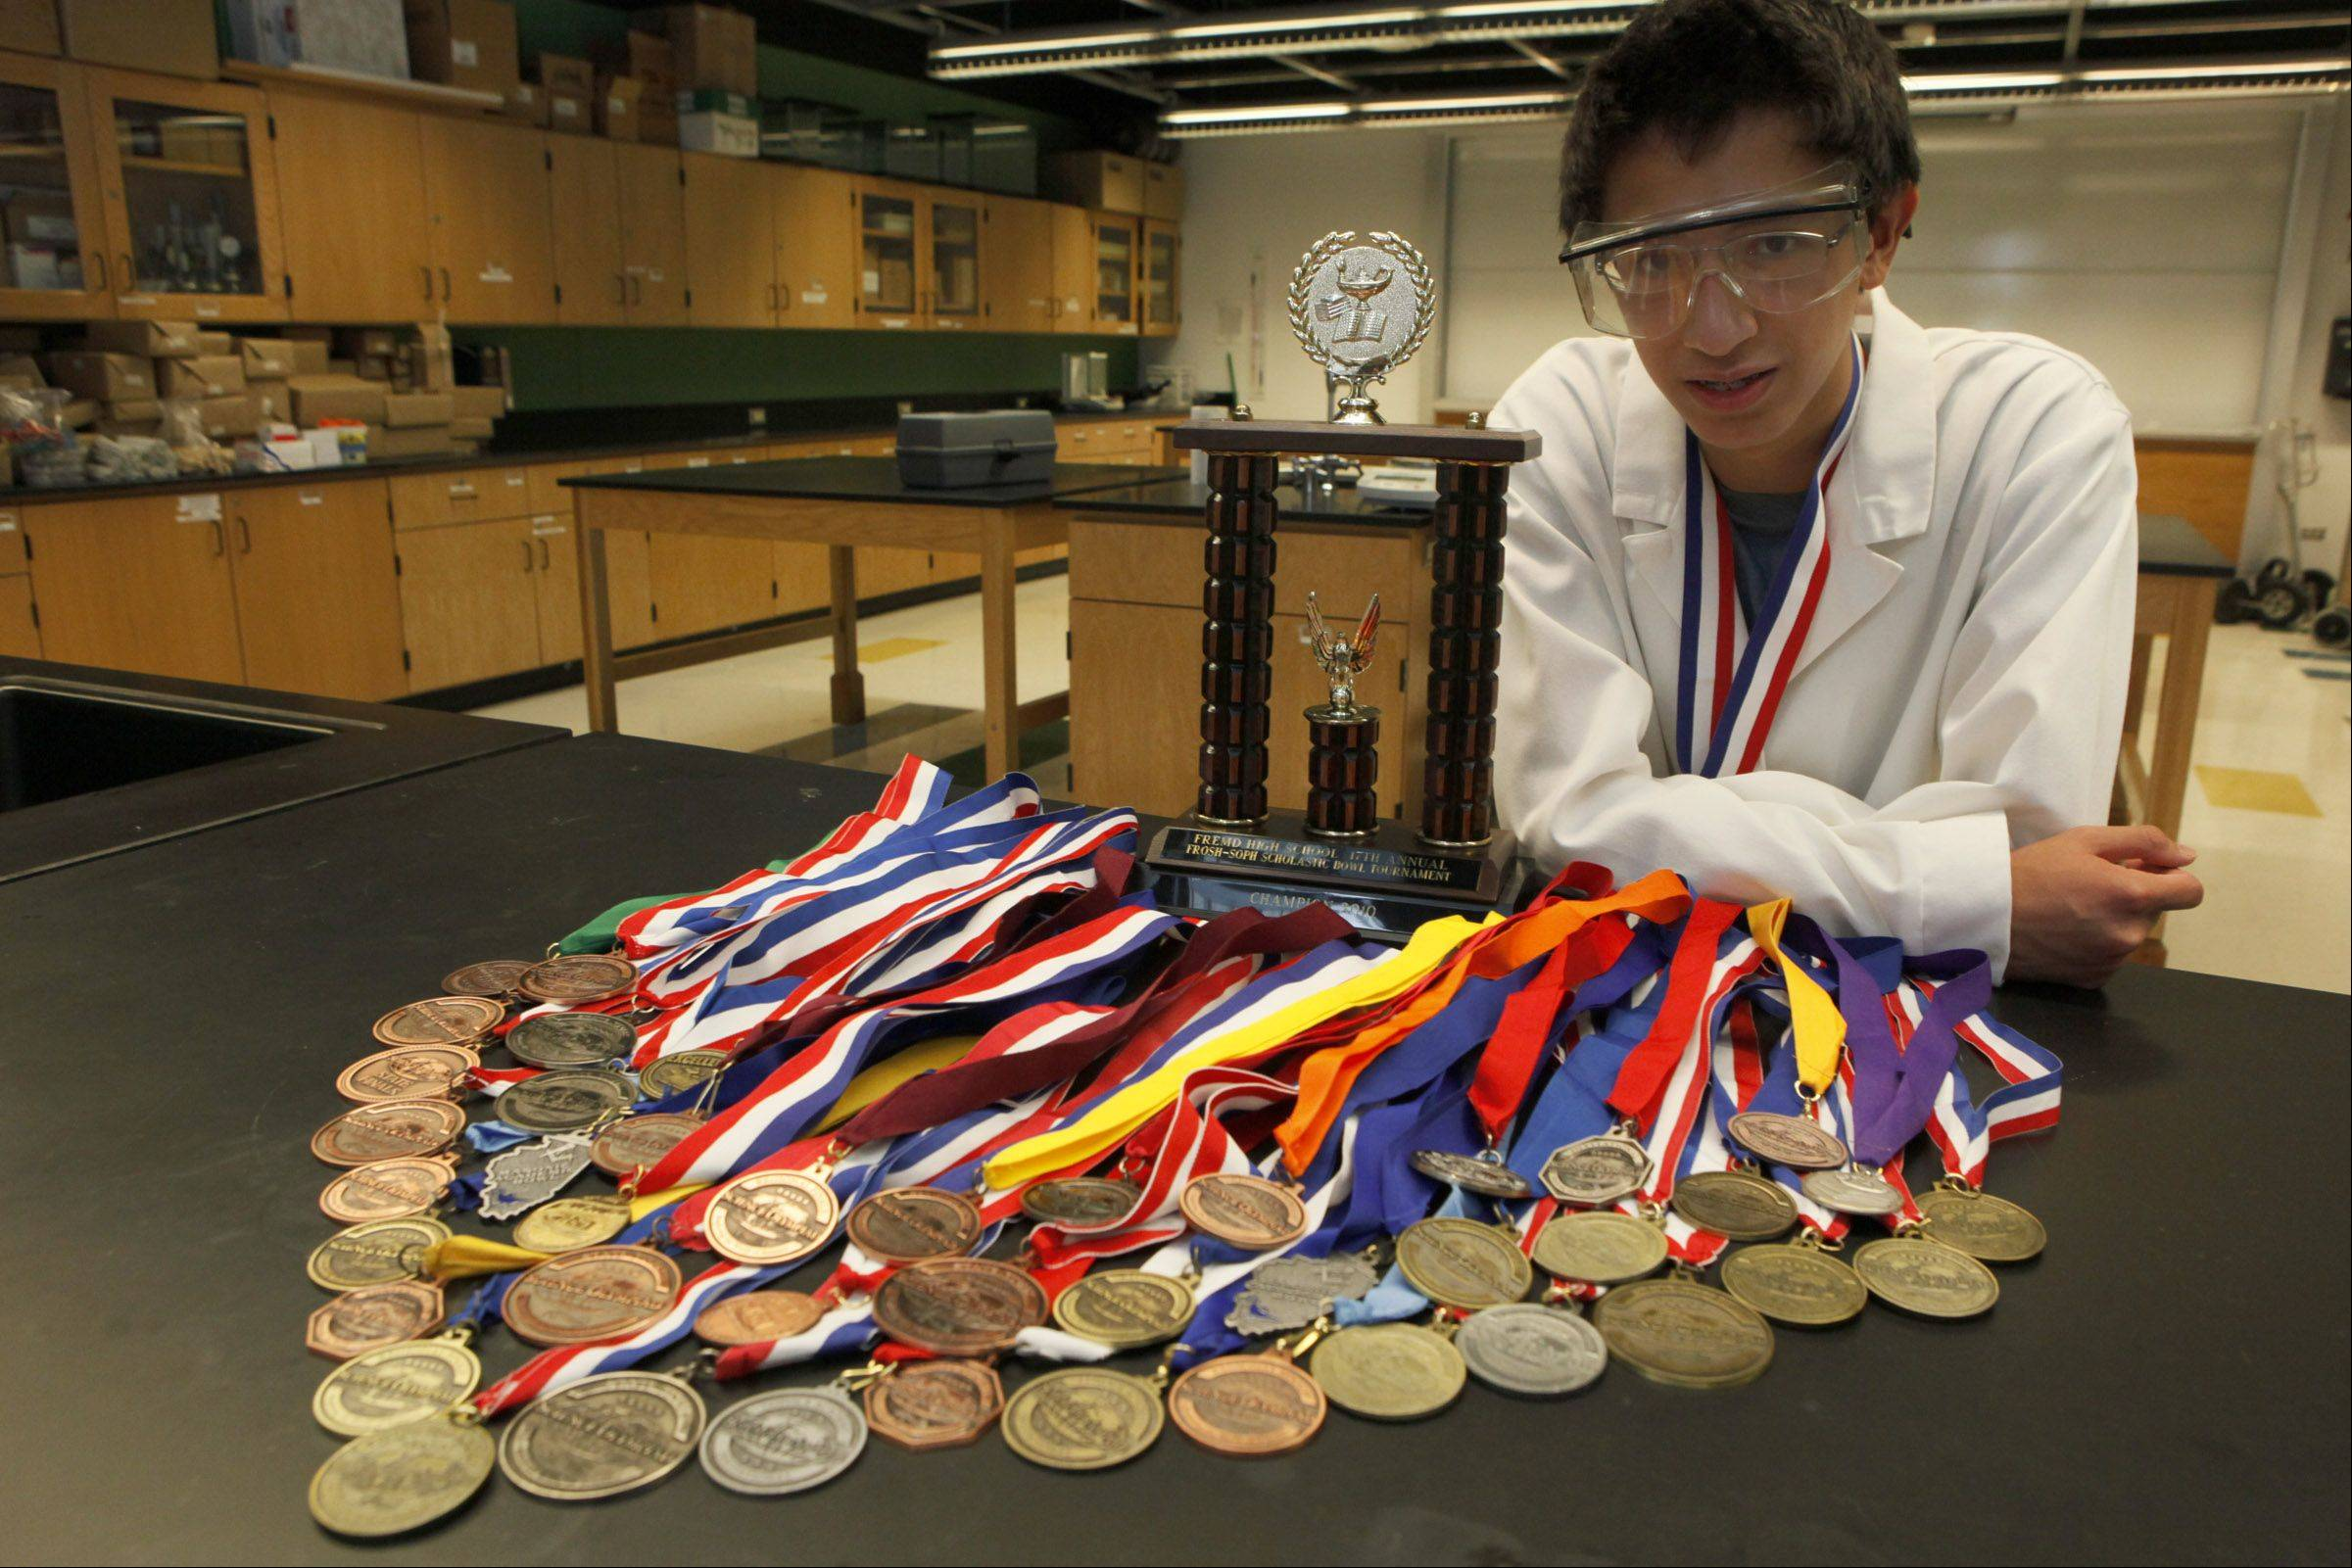 Naperville teen among nation's top chemistry students